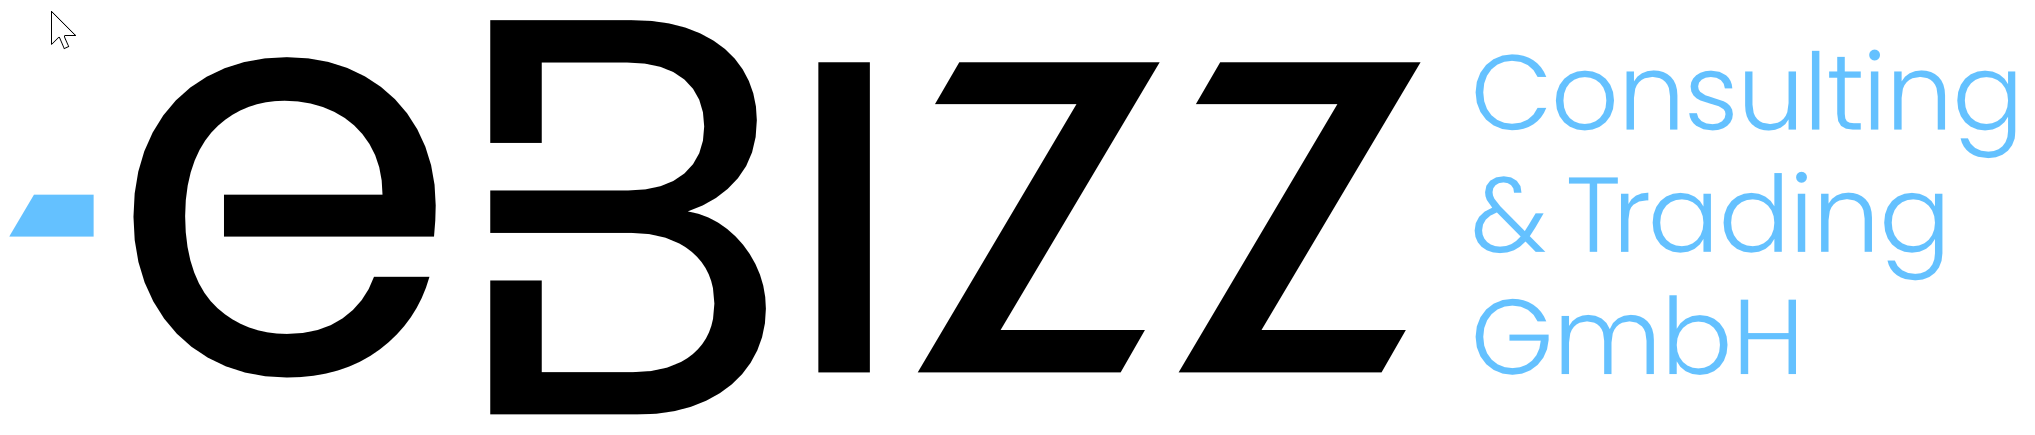 eBizz Consulting and Trading GmbH